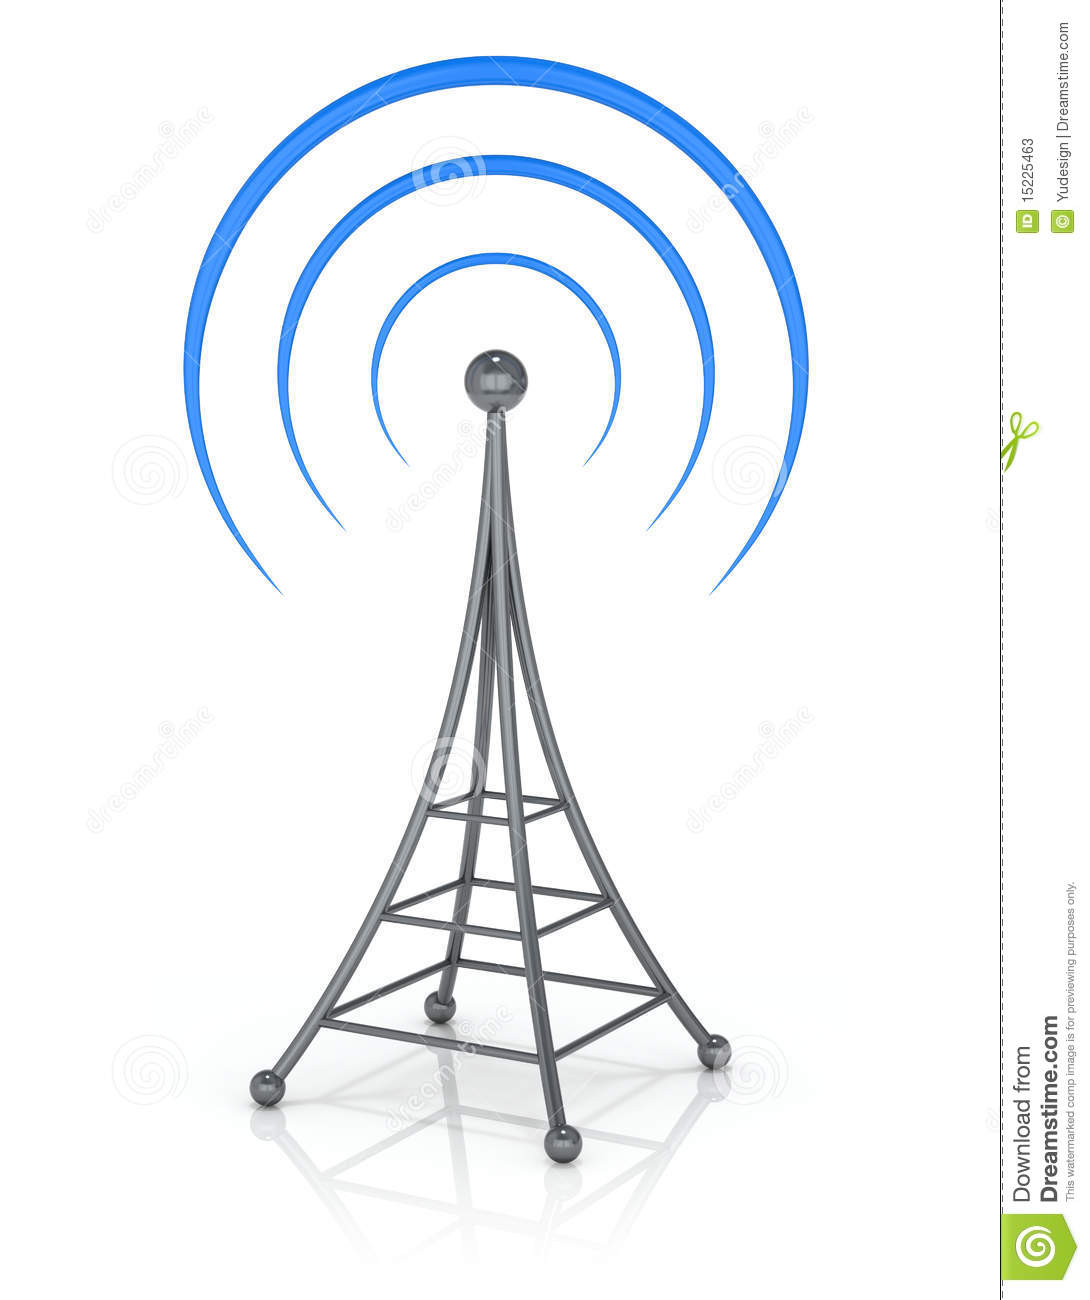 Antenna Tower Clipart.